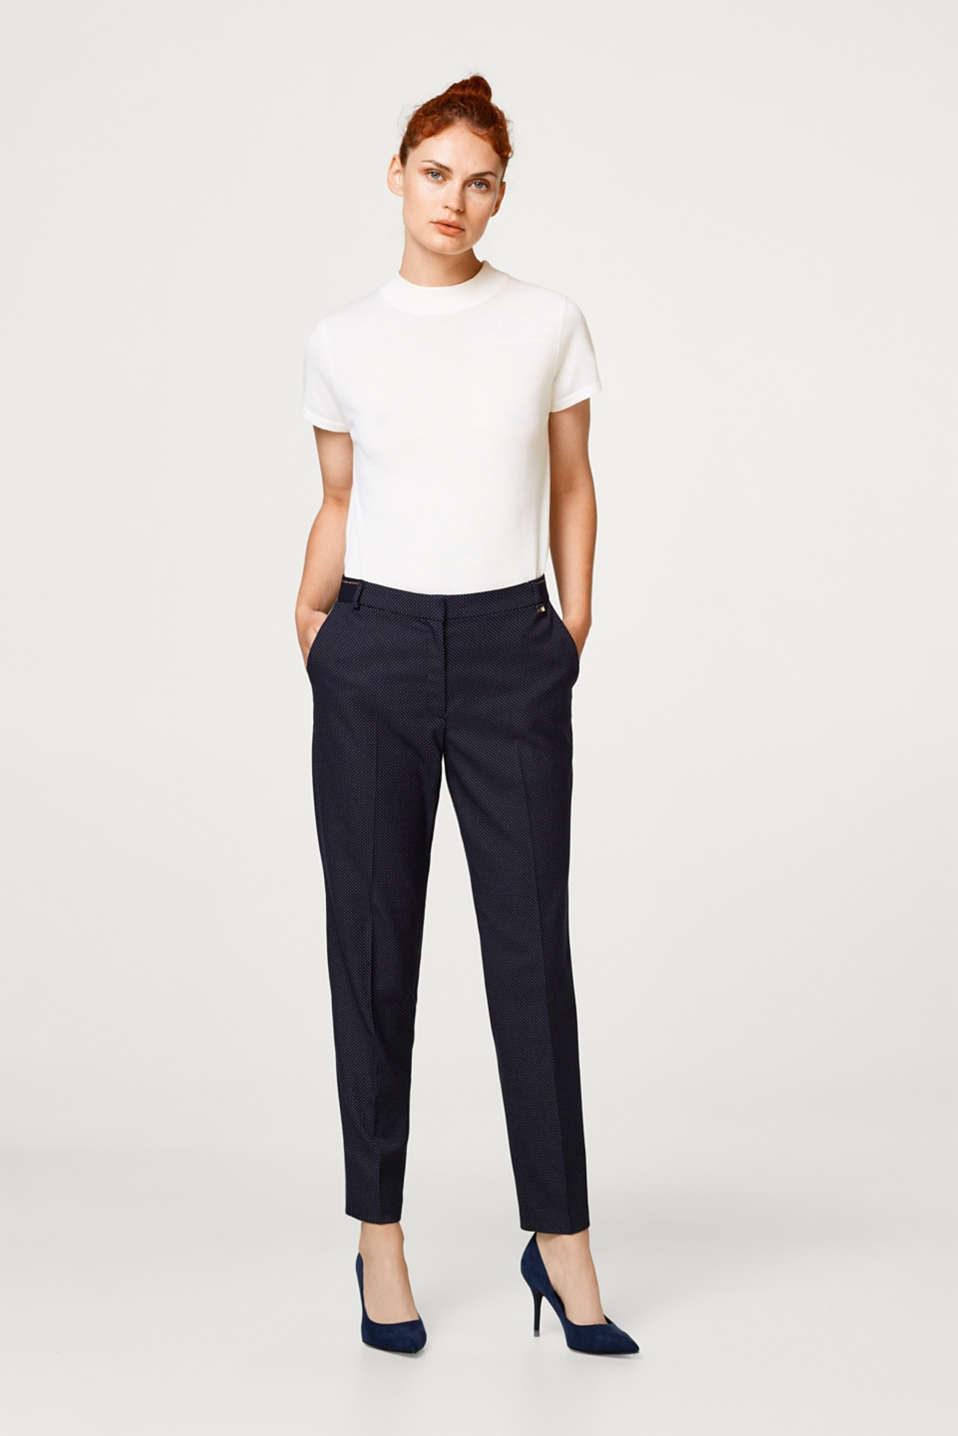 Esprit - Stretch trousers in a tracksuit style with jacquard polka dots